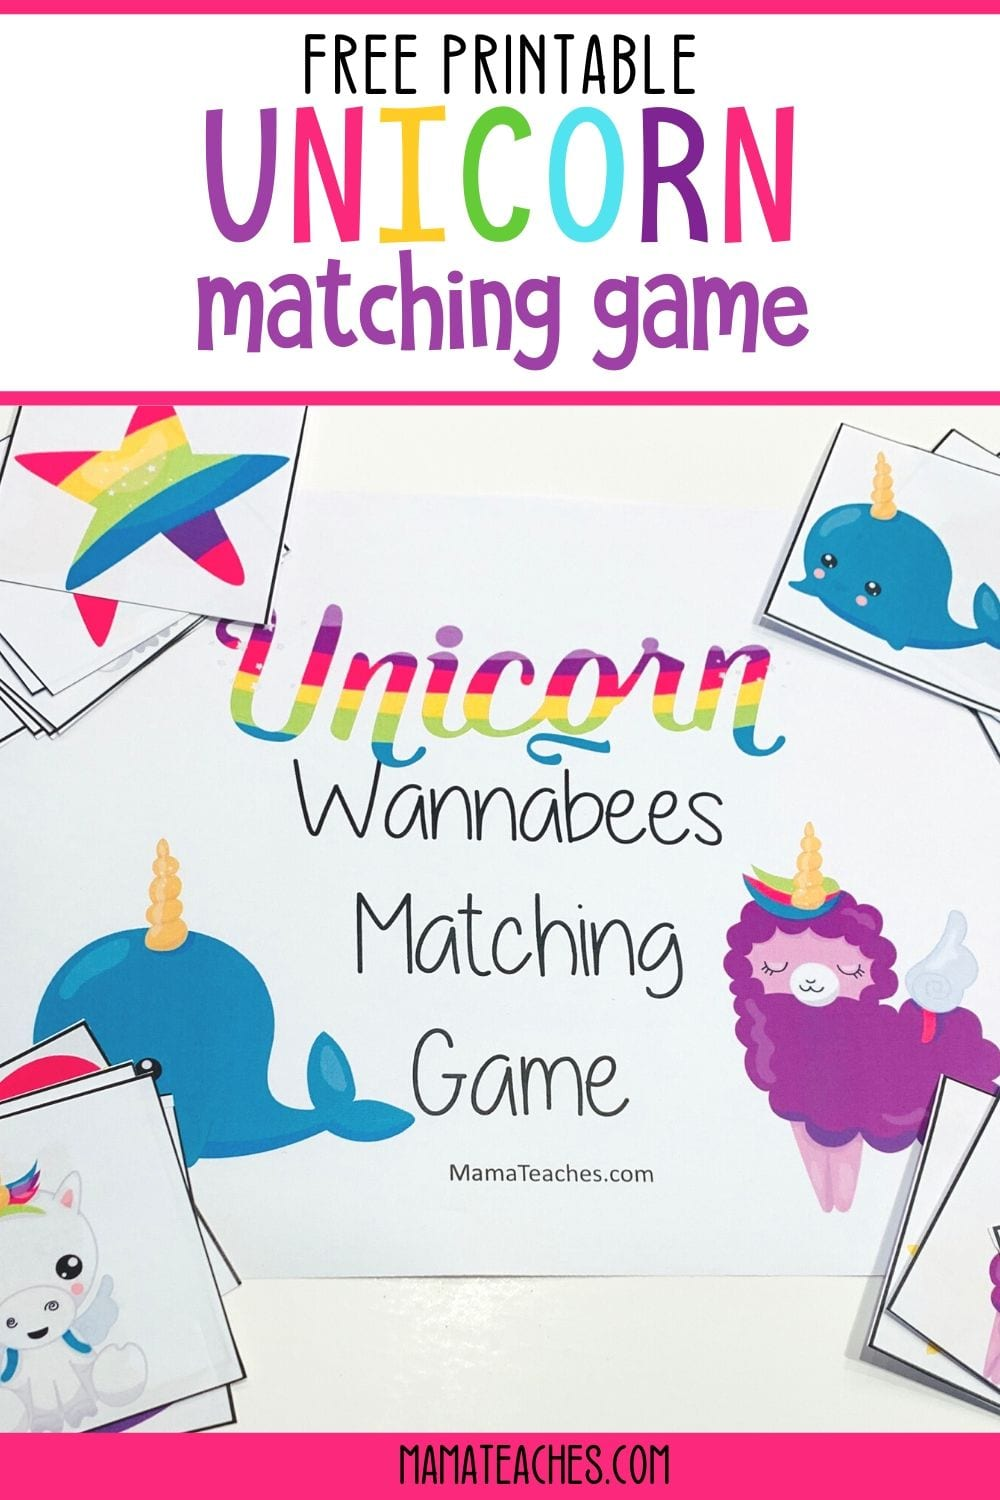 Free Printable Unicorn Matching Game featuring Unicorn Wannabees - MamaTeaches.com